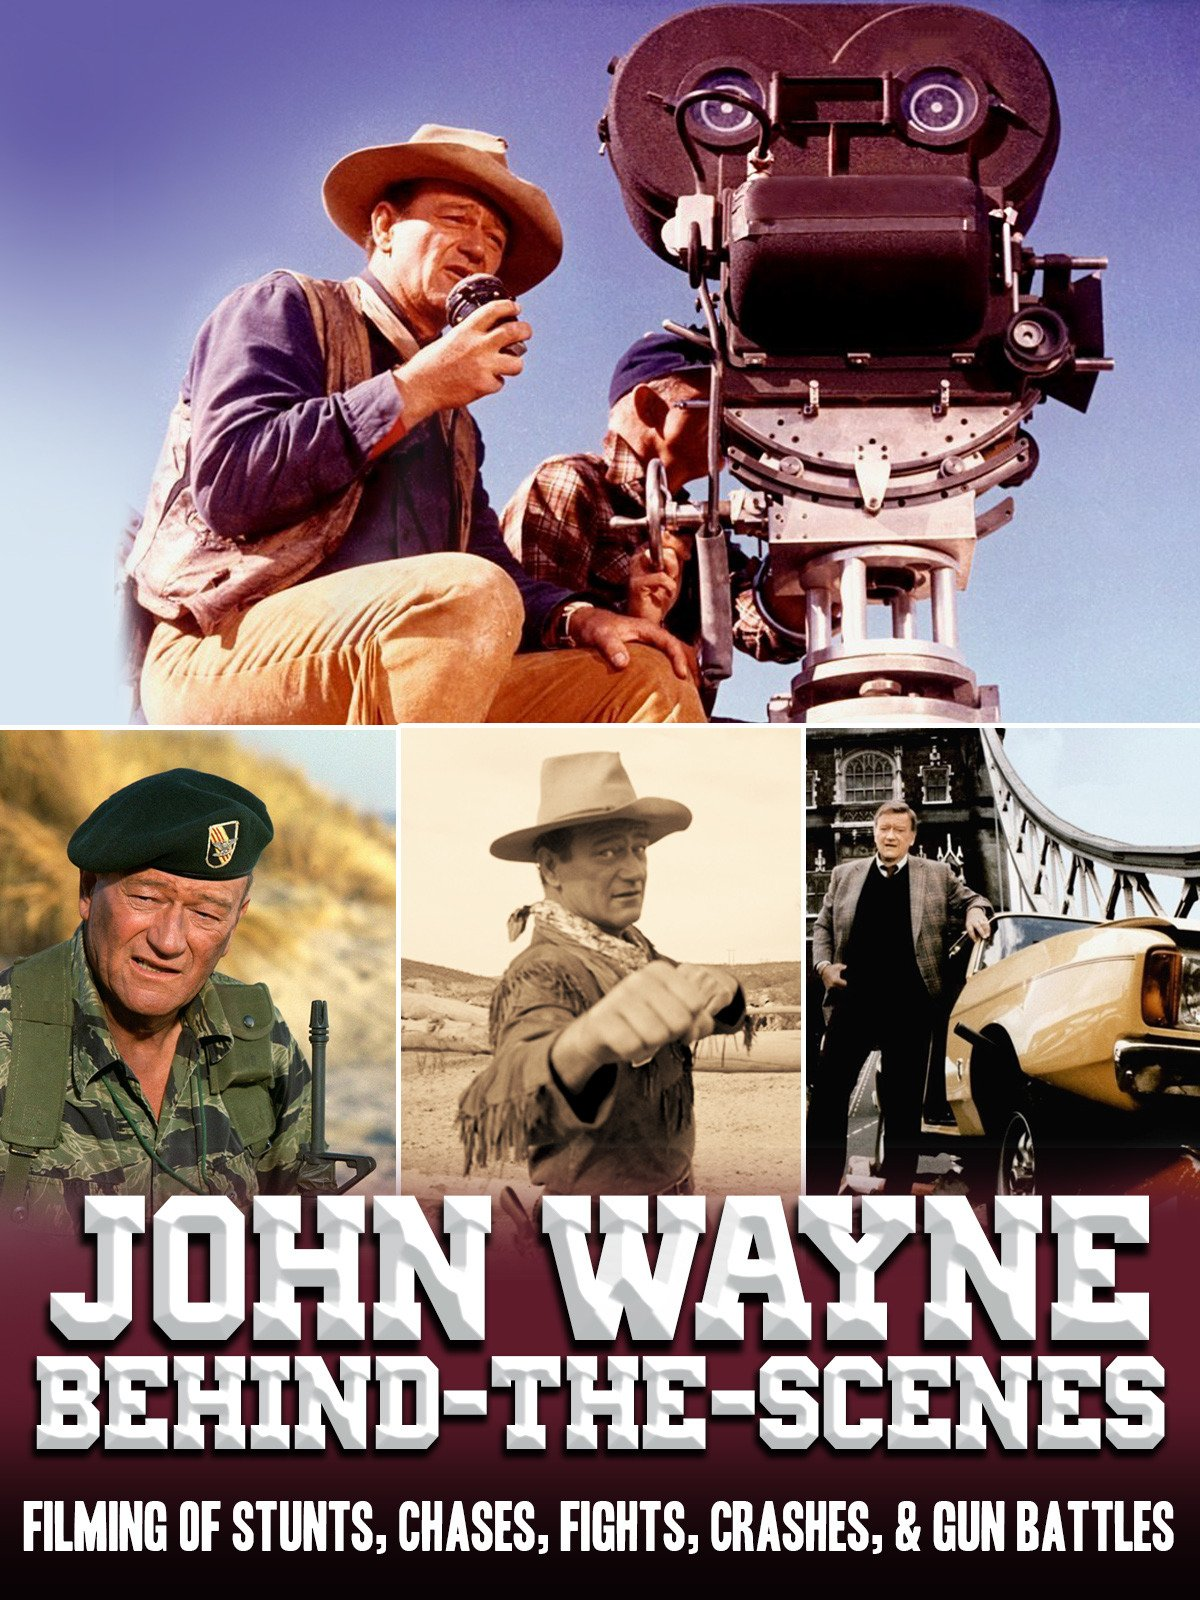 John Wayne Behind-the-Scenes - Filming Of Stunts, Chases, Fights, Crashes, Gun Battles on Amazon Prime Video UK